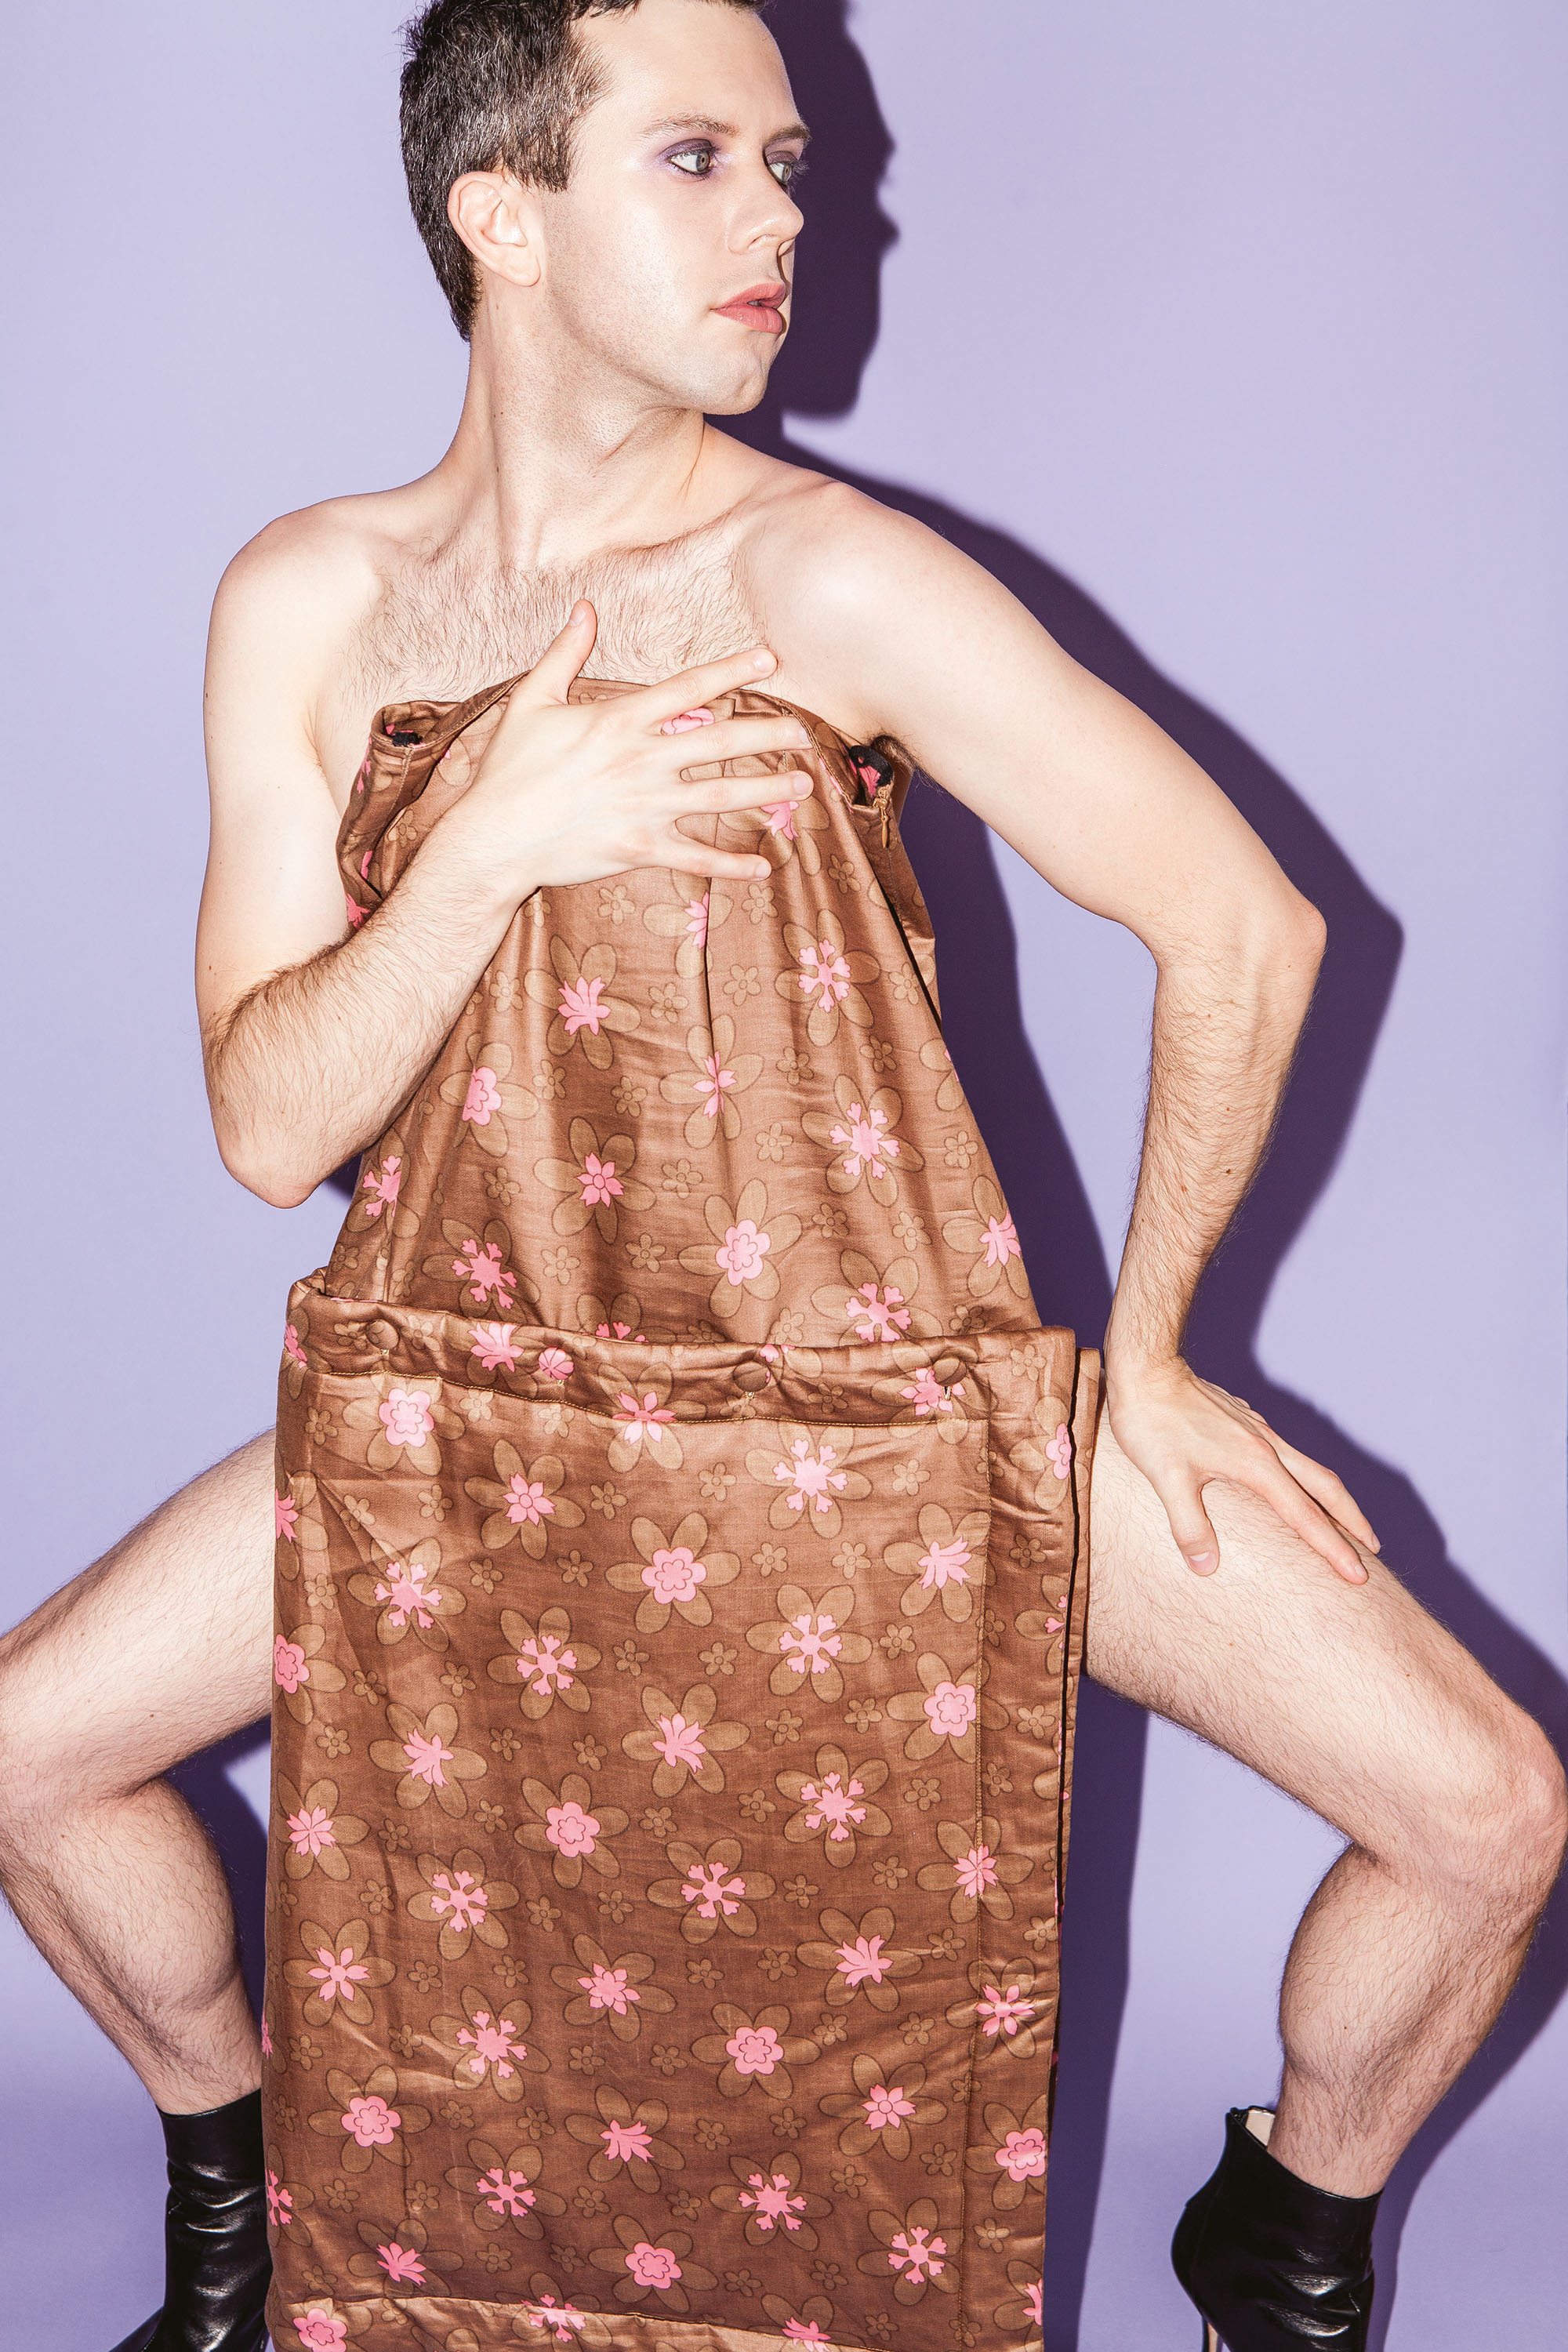 Amy Sedaris Naked cole escola is down for whatever* — cakeboy magazine